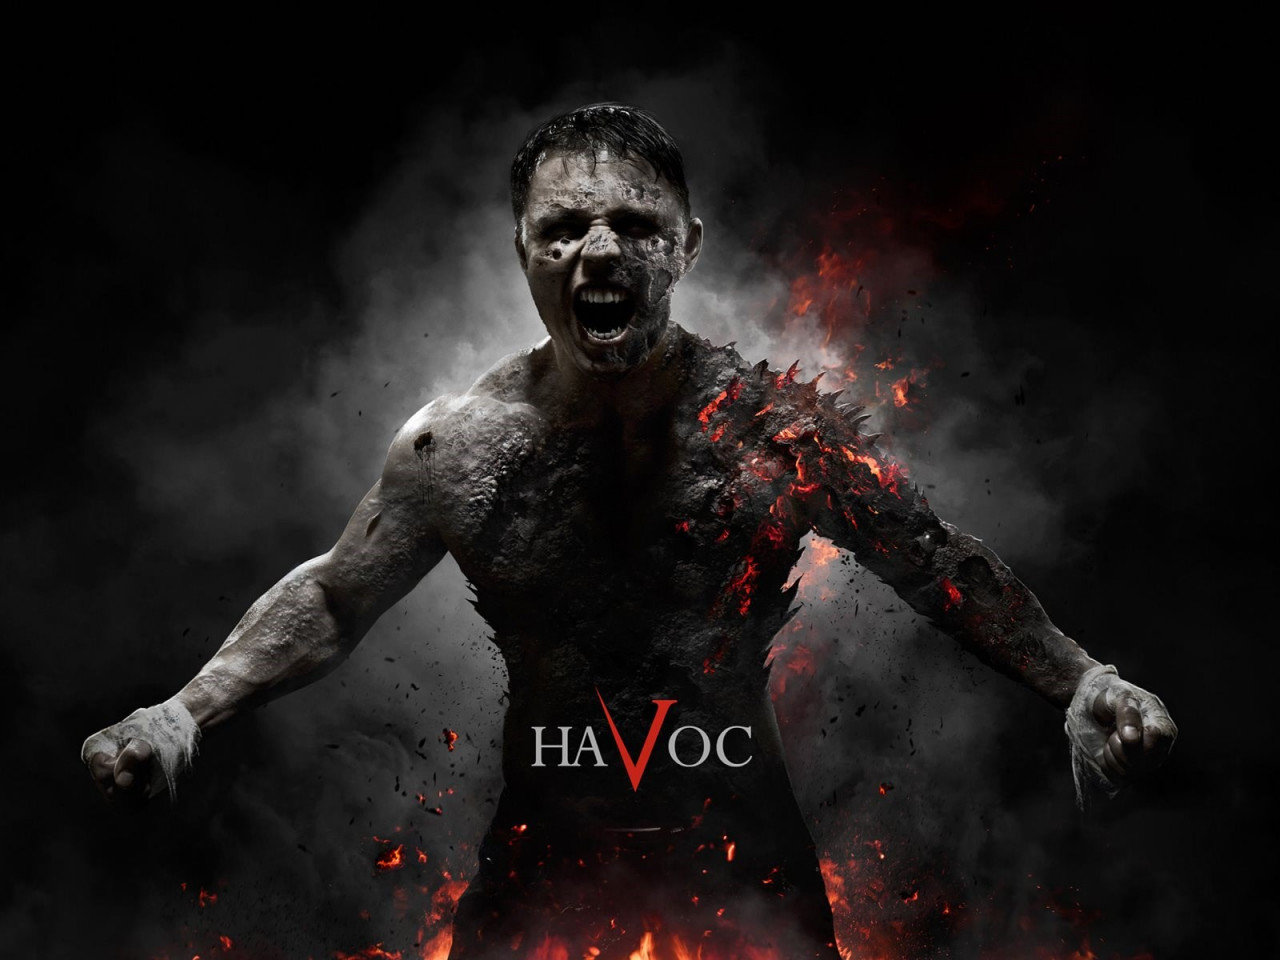 Hot digital art: Havoc wallpaper 1280x960